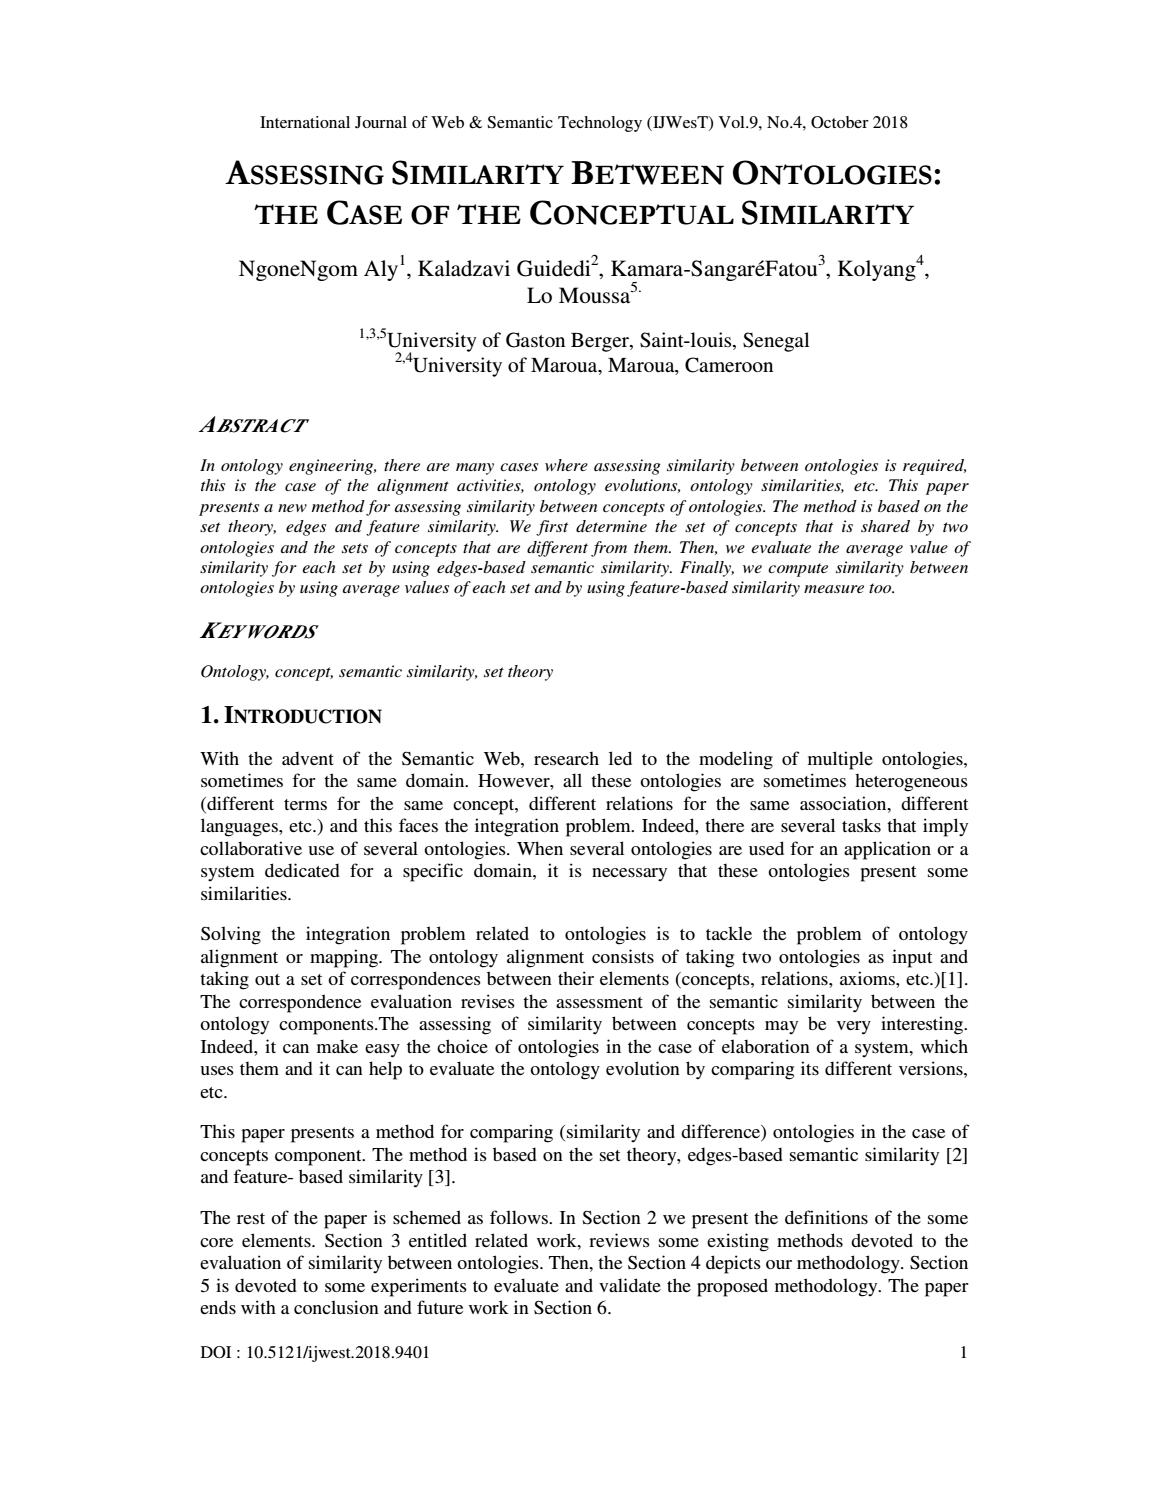 ASSESSING SIMILARITY BETWEEN ONTOLOGIES: THE CASE OF THE CONCEPTUAL